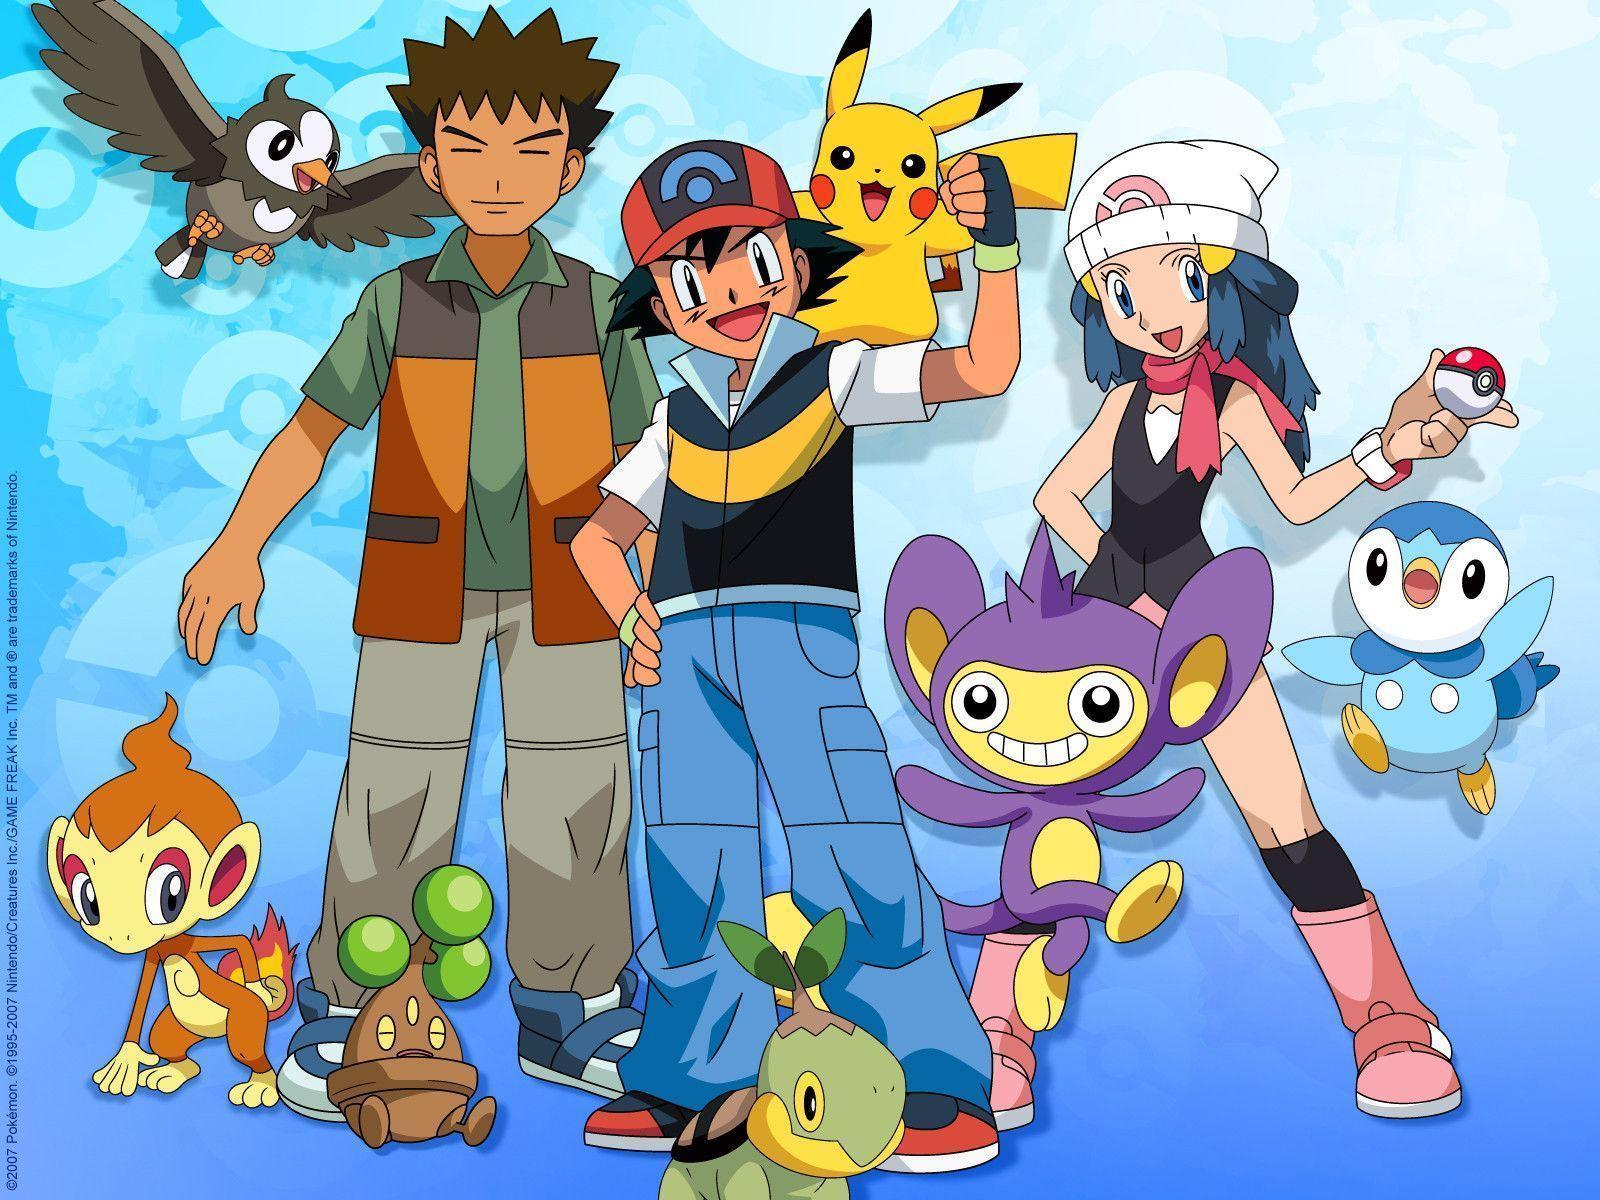 Pokemon Hd Wallpaper | Large HD Wallpaper Database